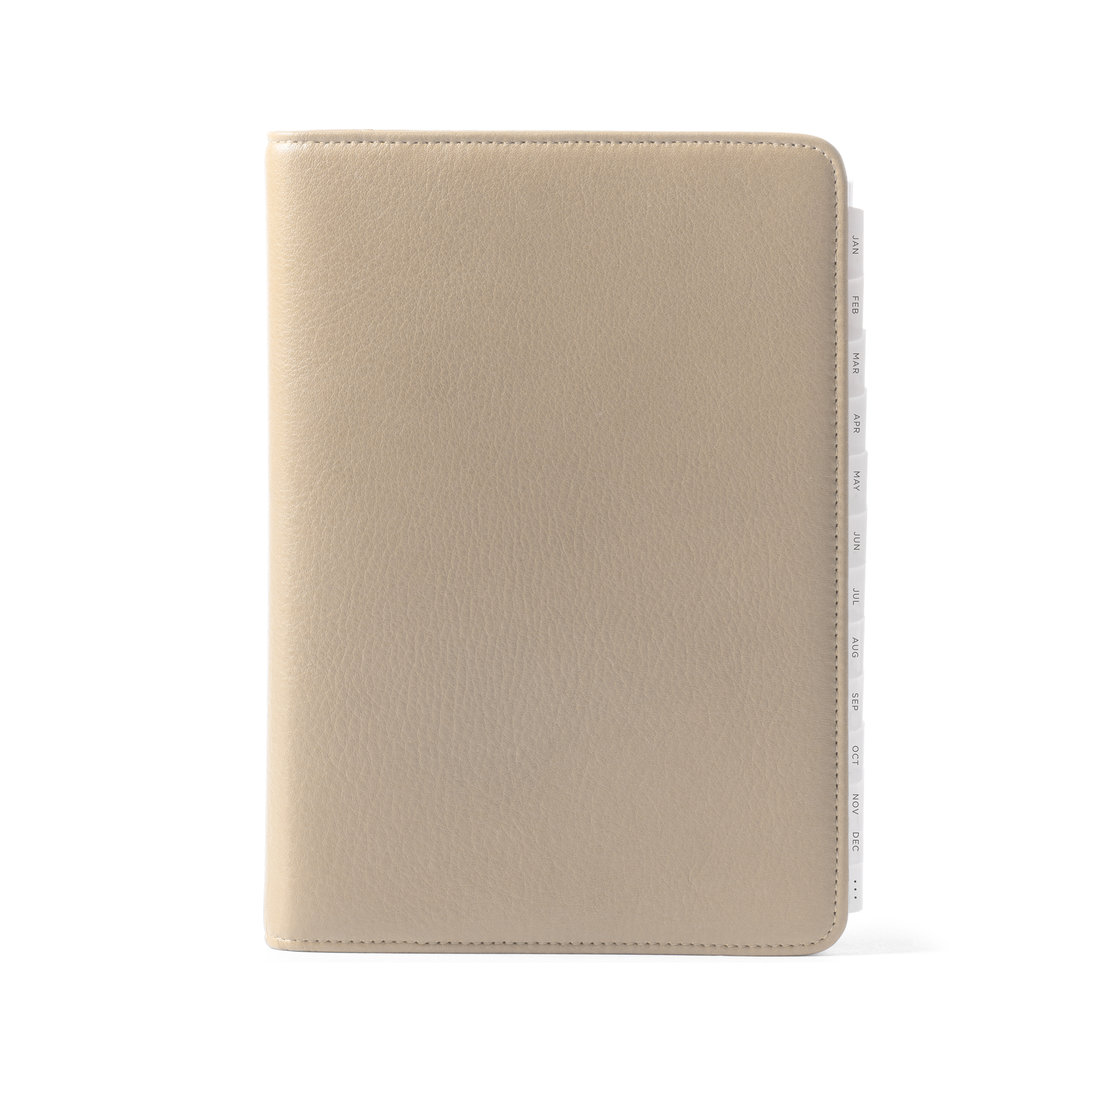 leatherology daily planner 2019 tan